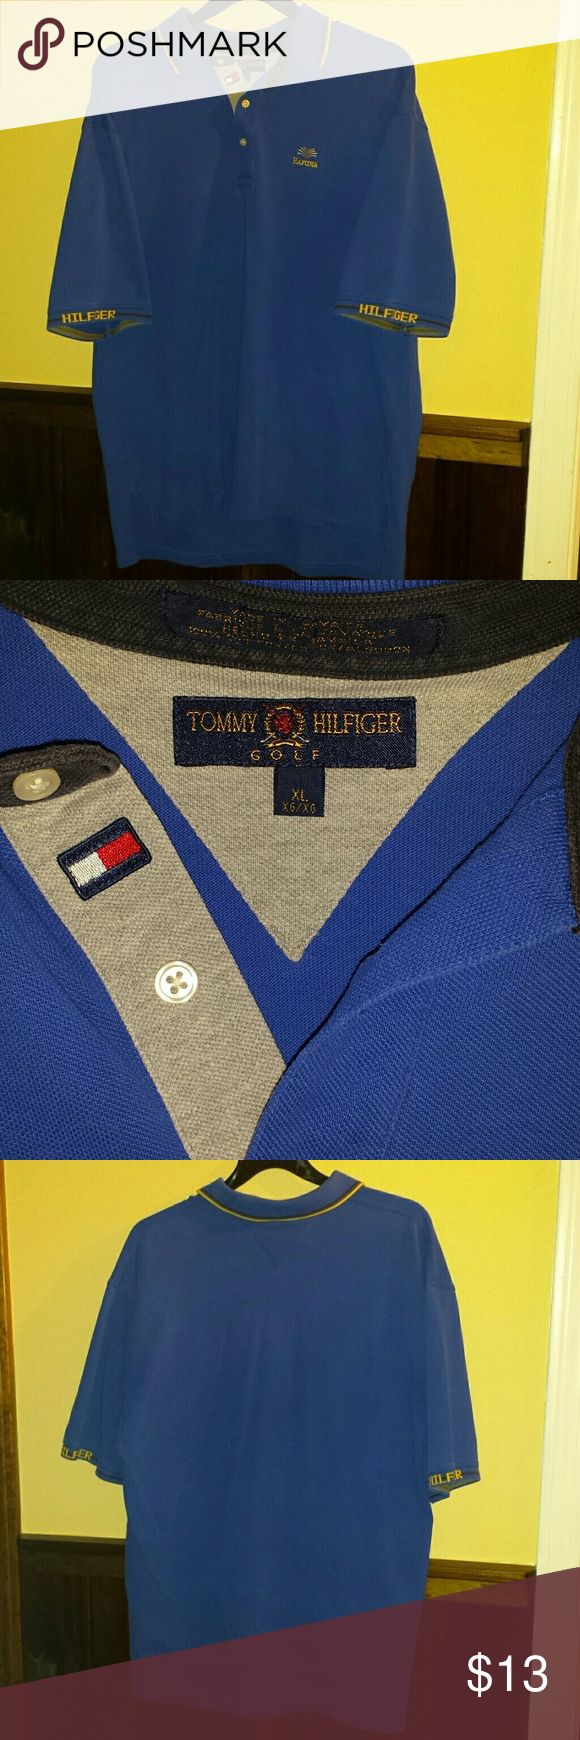 Tommy Hilfiger golf polo Good condition Tommy Hilfiger hapuna golf polo. No stains, holes, or stretches. Unique piece with intricate details such as Hilfiger on the ends of the sleeves and the Tommy logo near the collar Tommy Hilfiger Shirts Polos